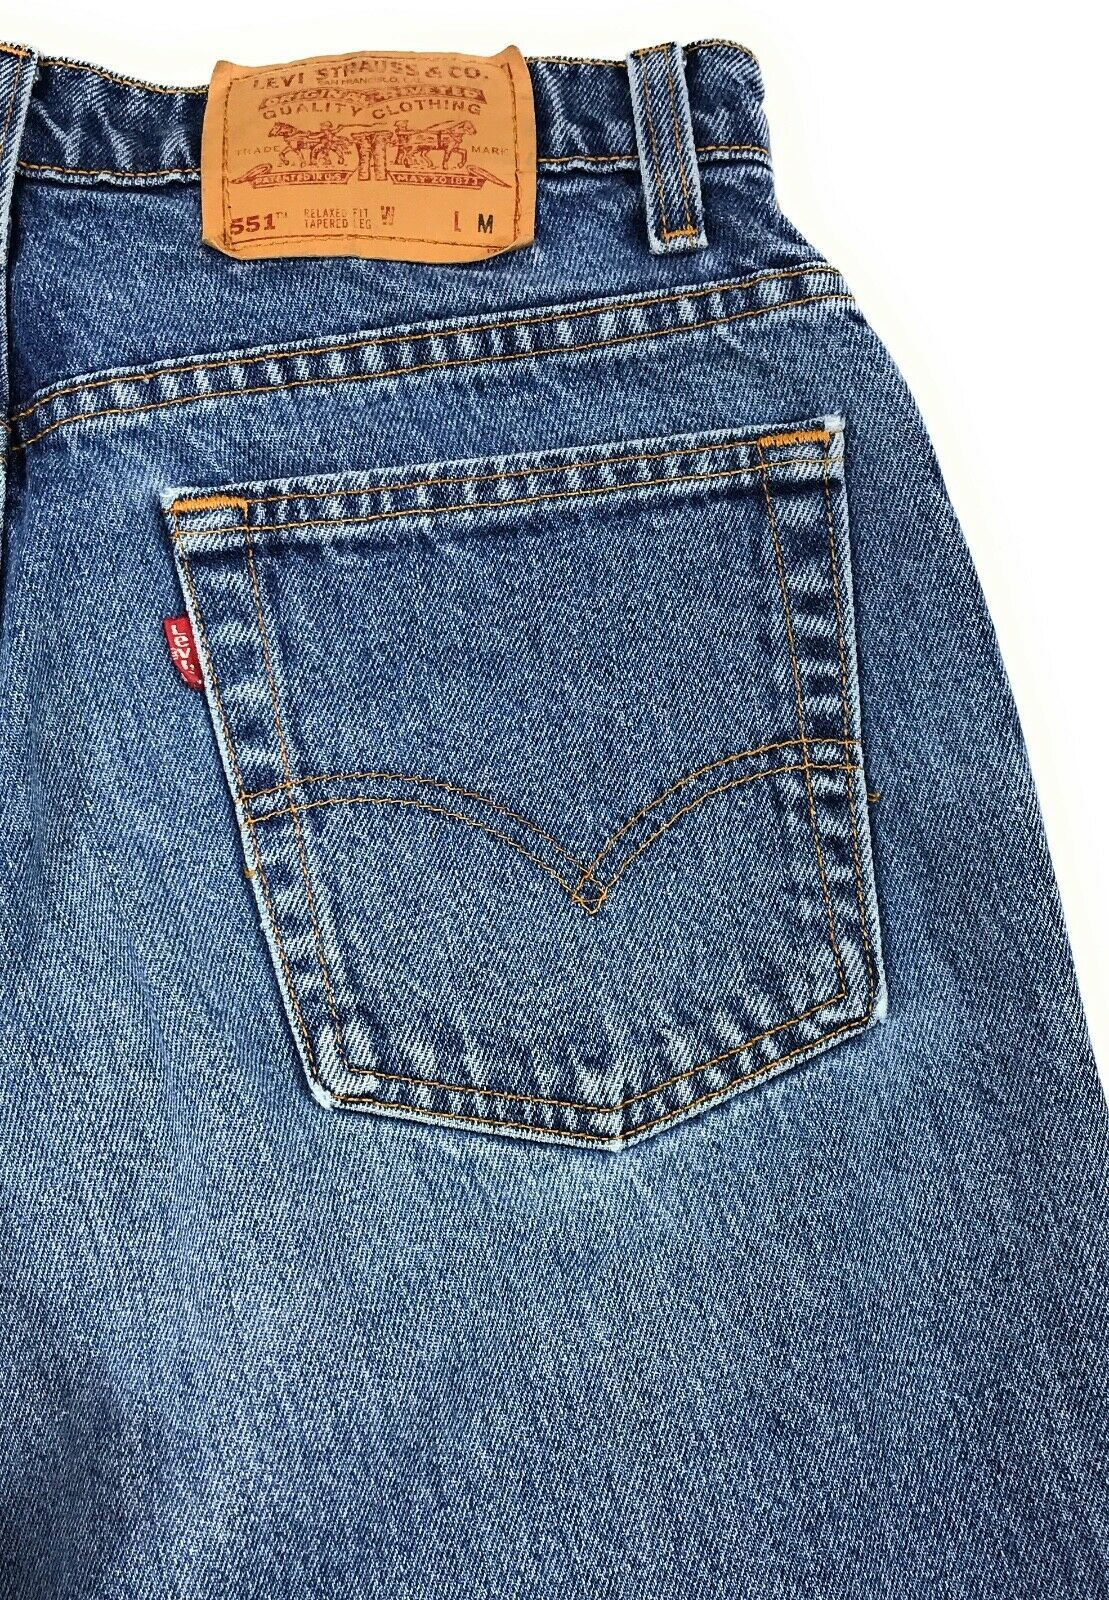 Vintage Levi's 551 Relaxed Tapered 100% Cotton USA Mom Blue Jeans Women's 14M